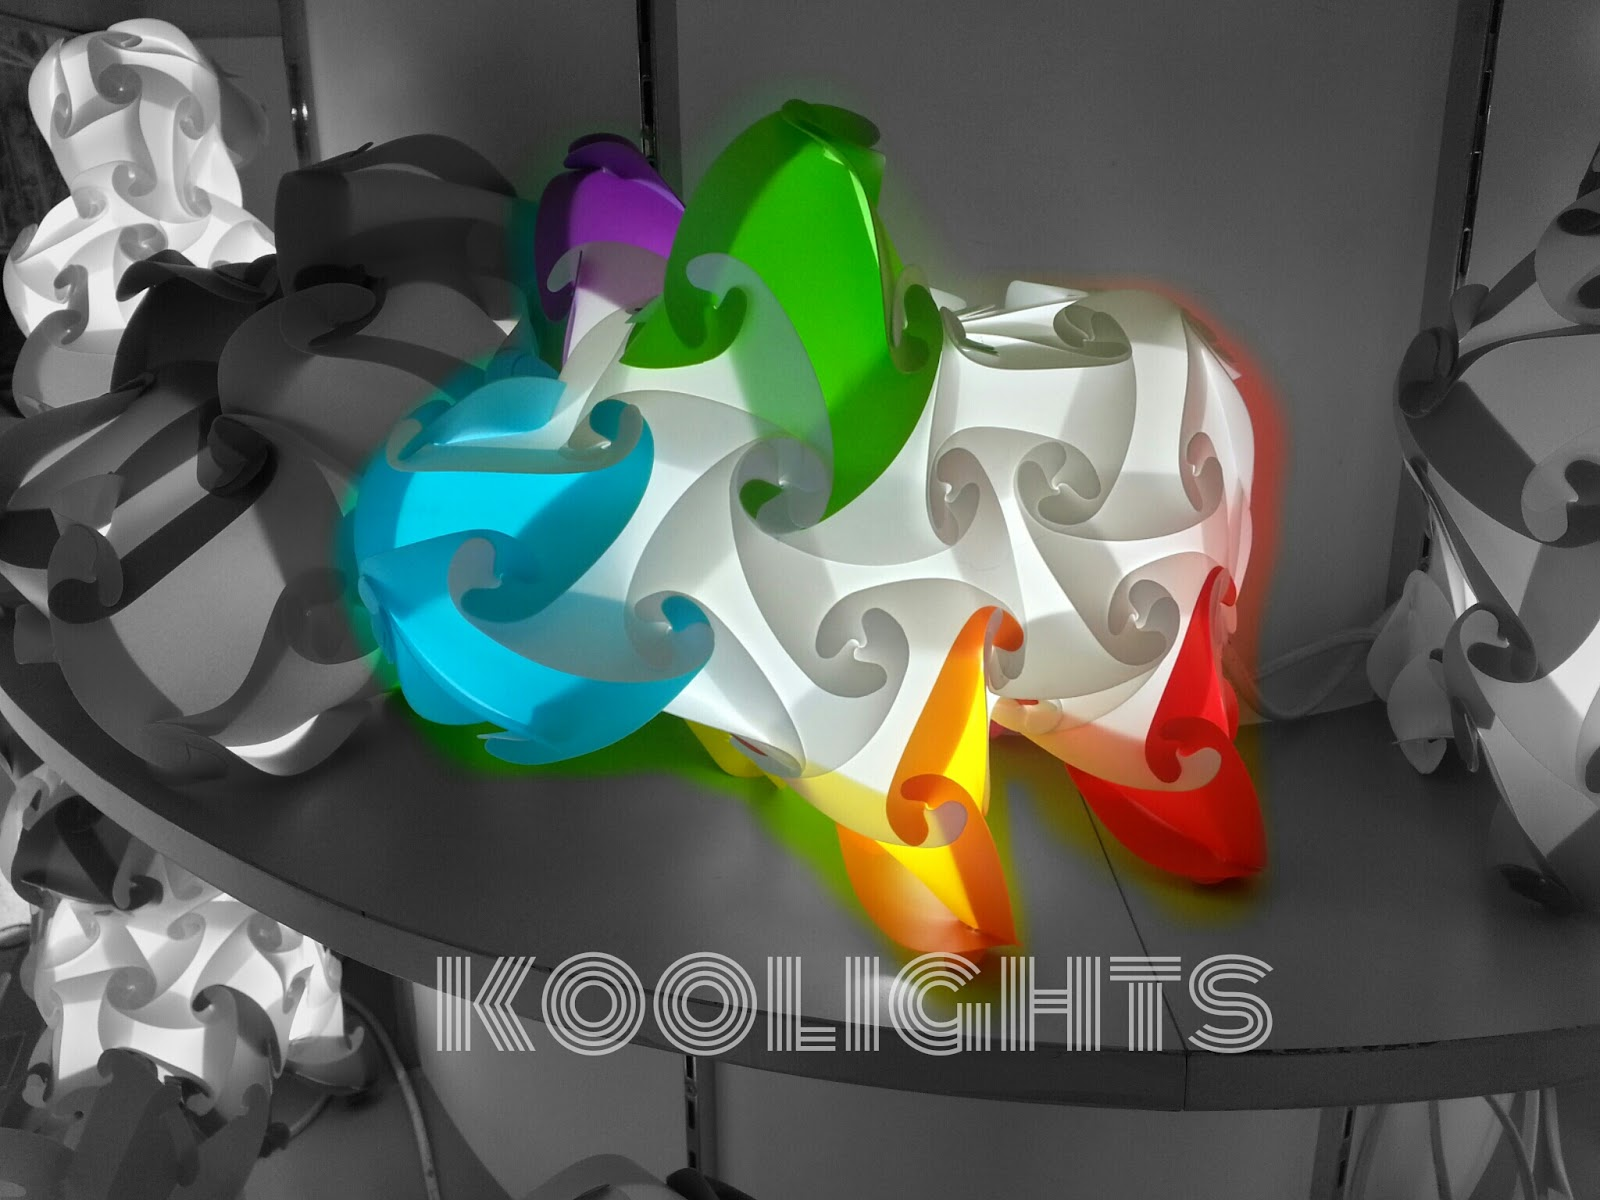 koolights, koolights korea, luvalamp,table lamp, iq lamp, iq light, jigsaw lamp, jigsaw light, puzzle lamp, puzzle light, handmade lights, lamps, night lamp, lampshades, night light, DIY, lights, christmas gifts, cool gifts, gifts, corporate, mrlampshop, rainbow colors, franchise, distributor, eco friendly, plastic bottle puncher, recycle, upcycle, reuse plastic, led, handicraft, hand made, creative, rainbow, red, pink, orange, yellow, green, purple, white, black, pp, plastic, change shapes, assemble, DIY, do it yourself, piglet, small, cute, pig